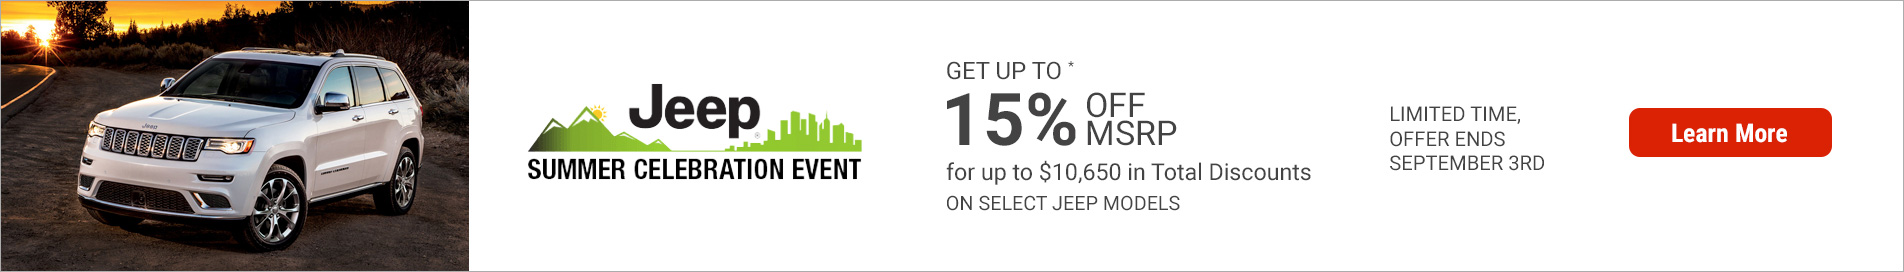 August 2019 Jeep OEM Offer